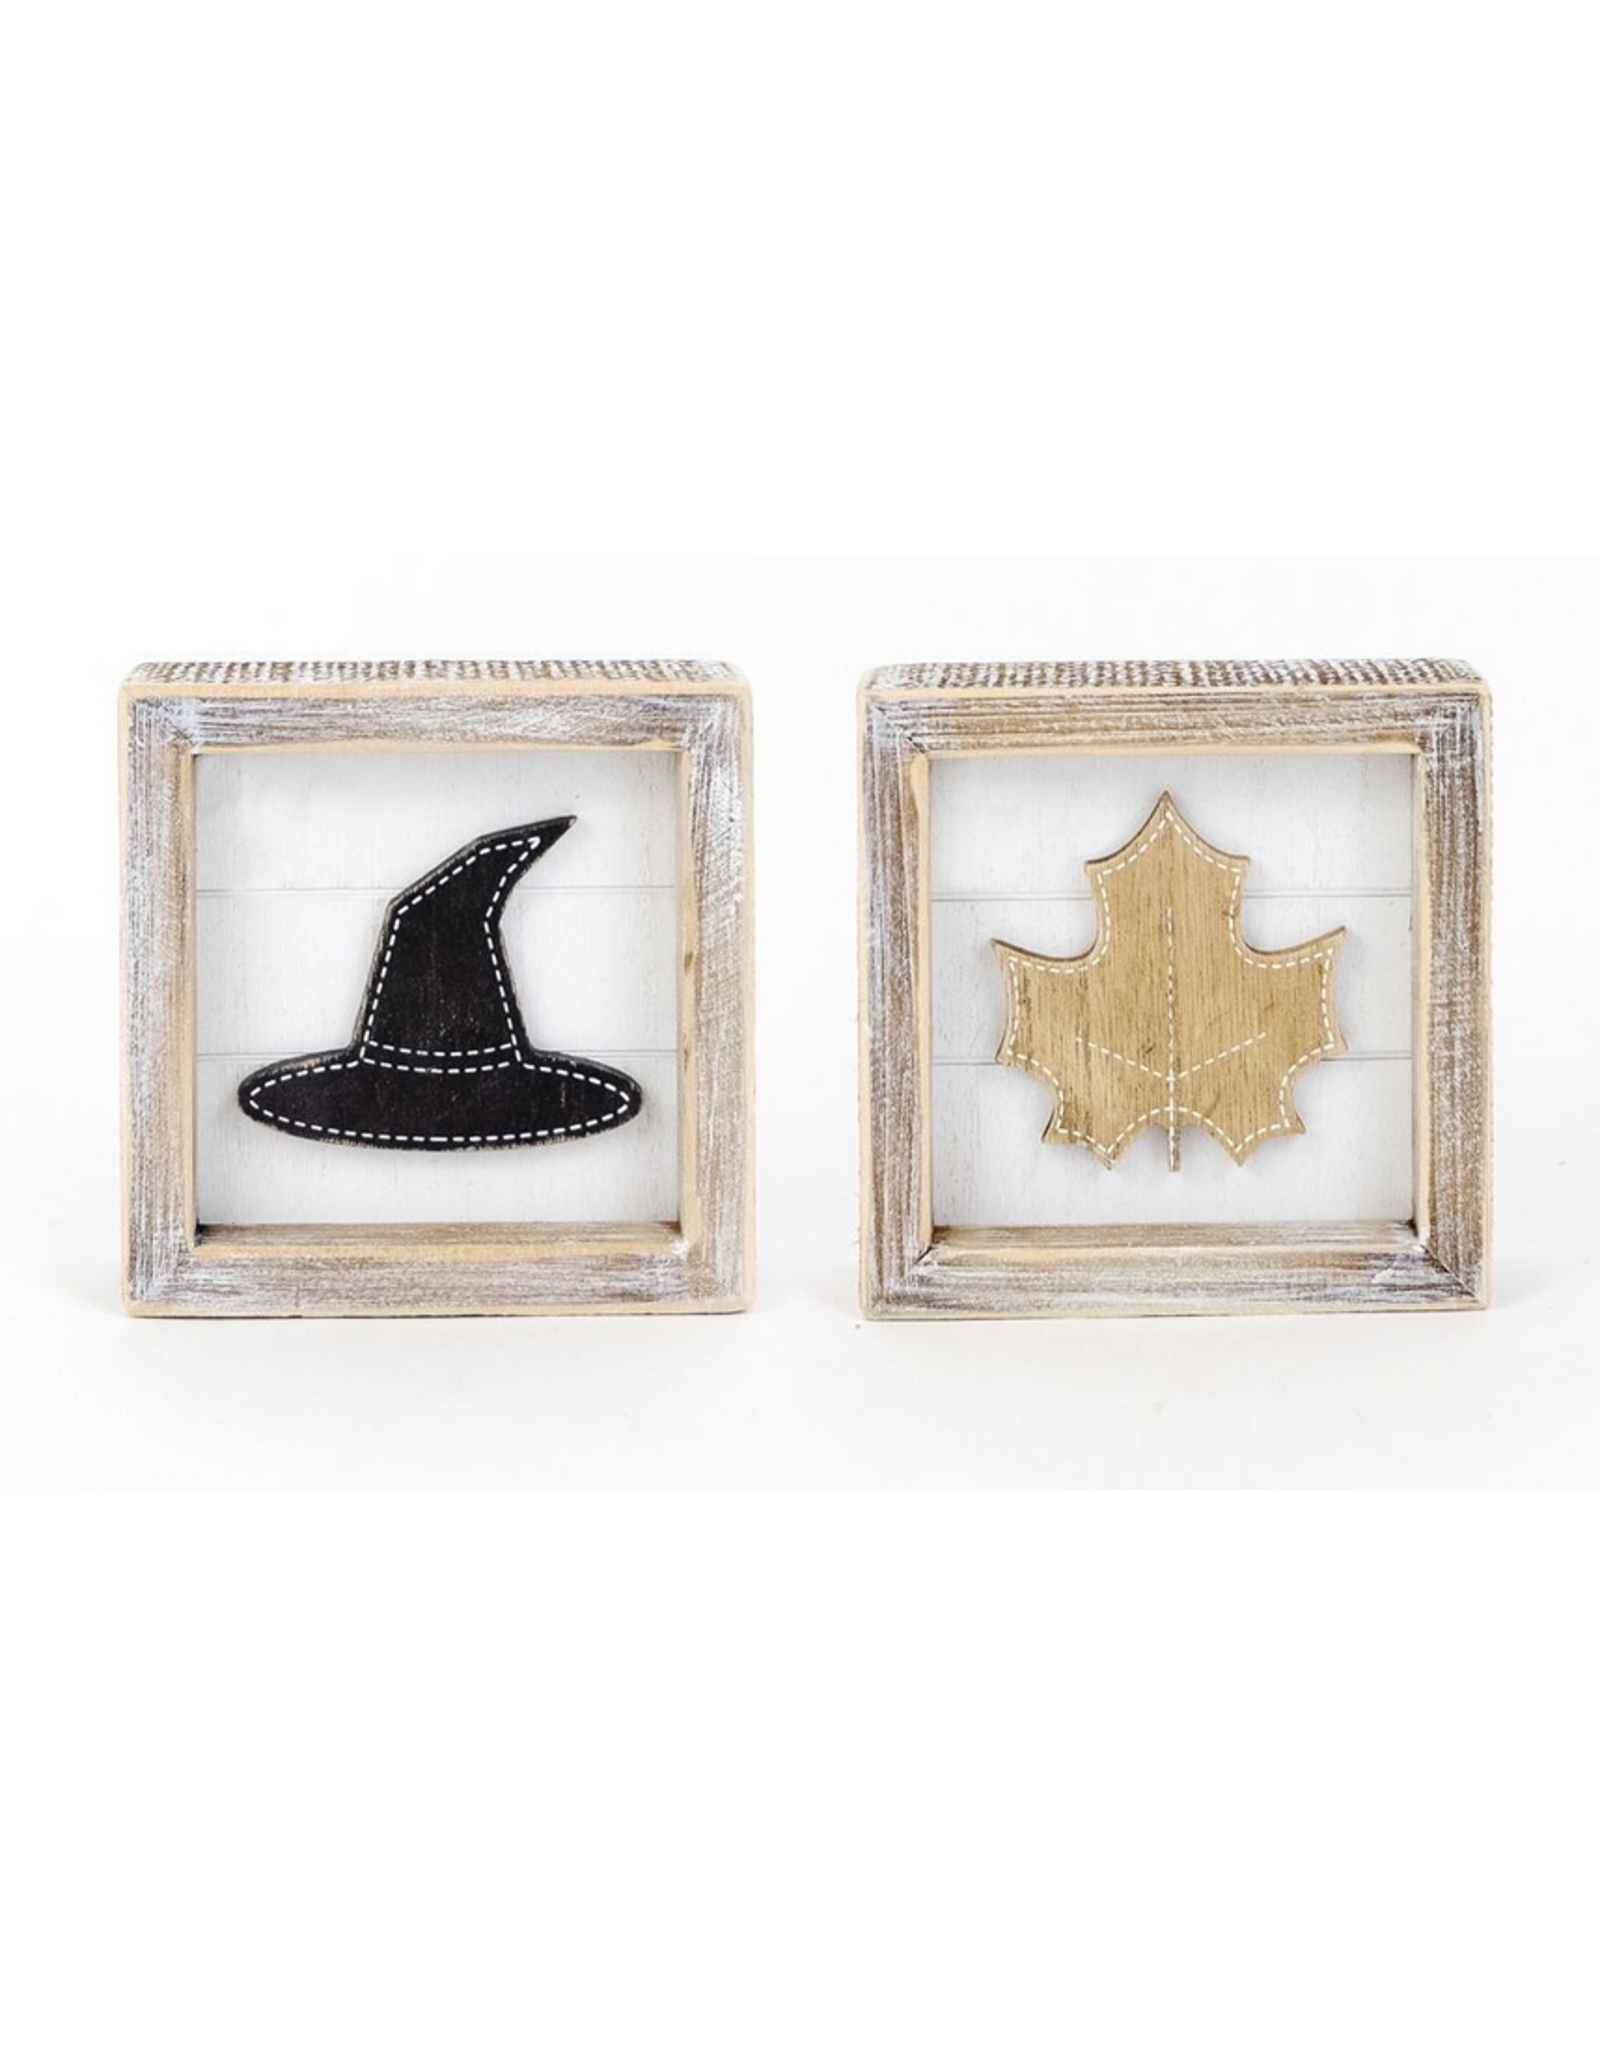 Adams & Co. Witch Hat/Autumn Leaf Reversible Sign 5 x 5